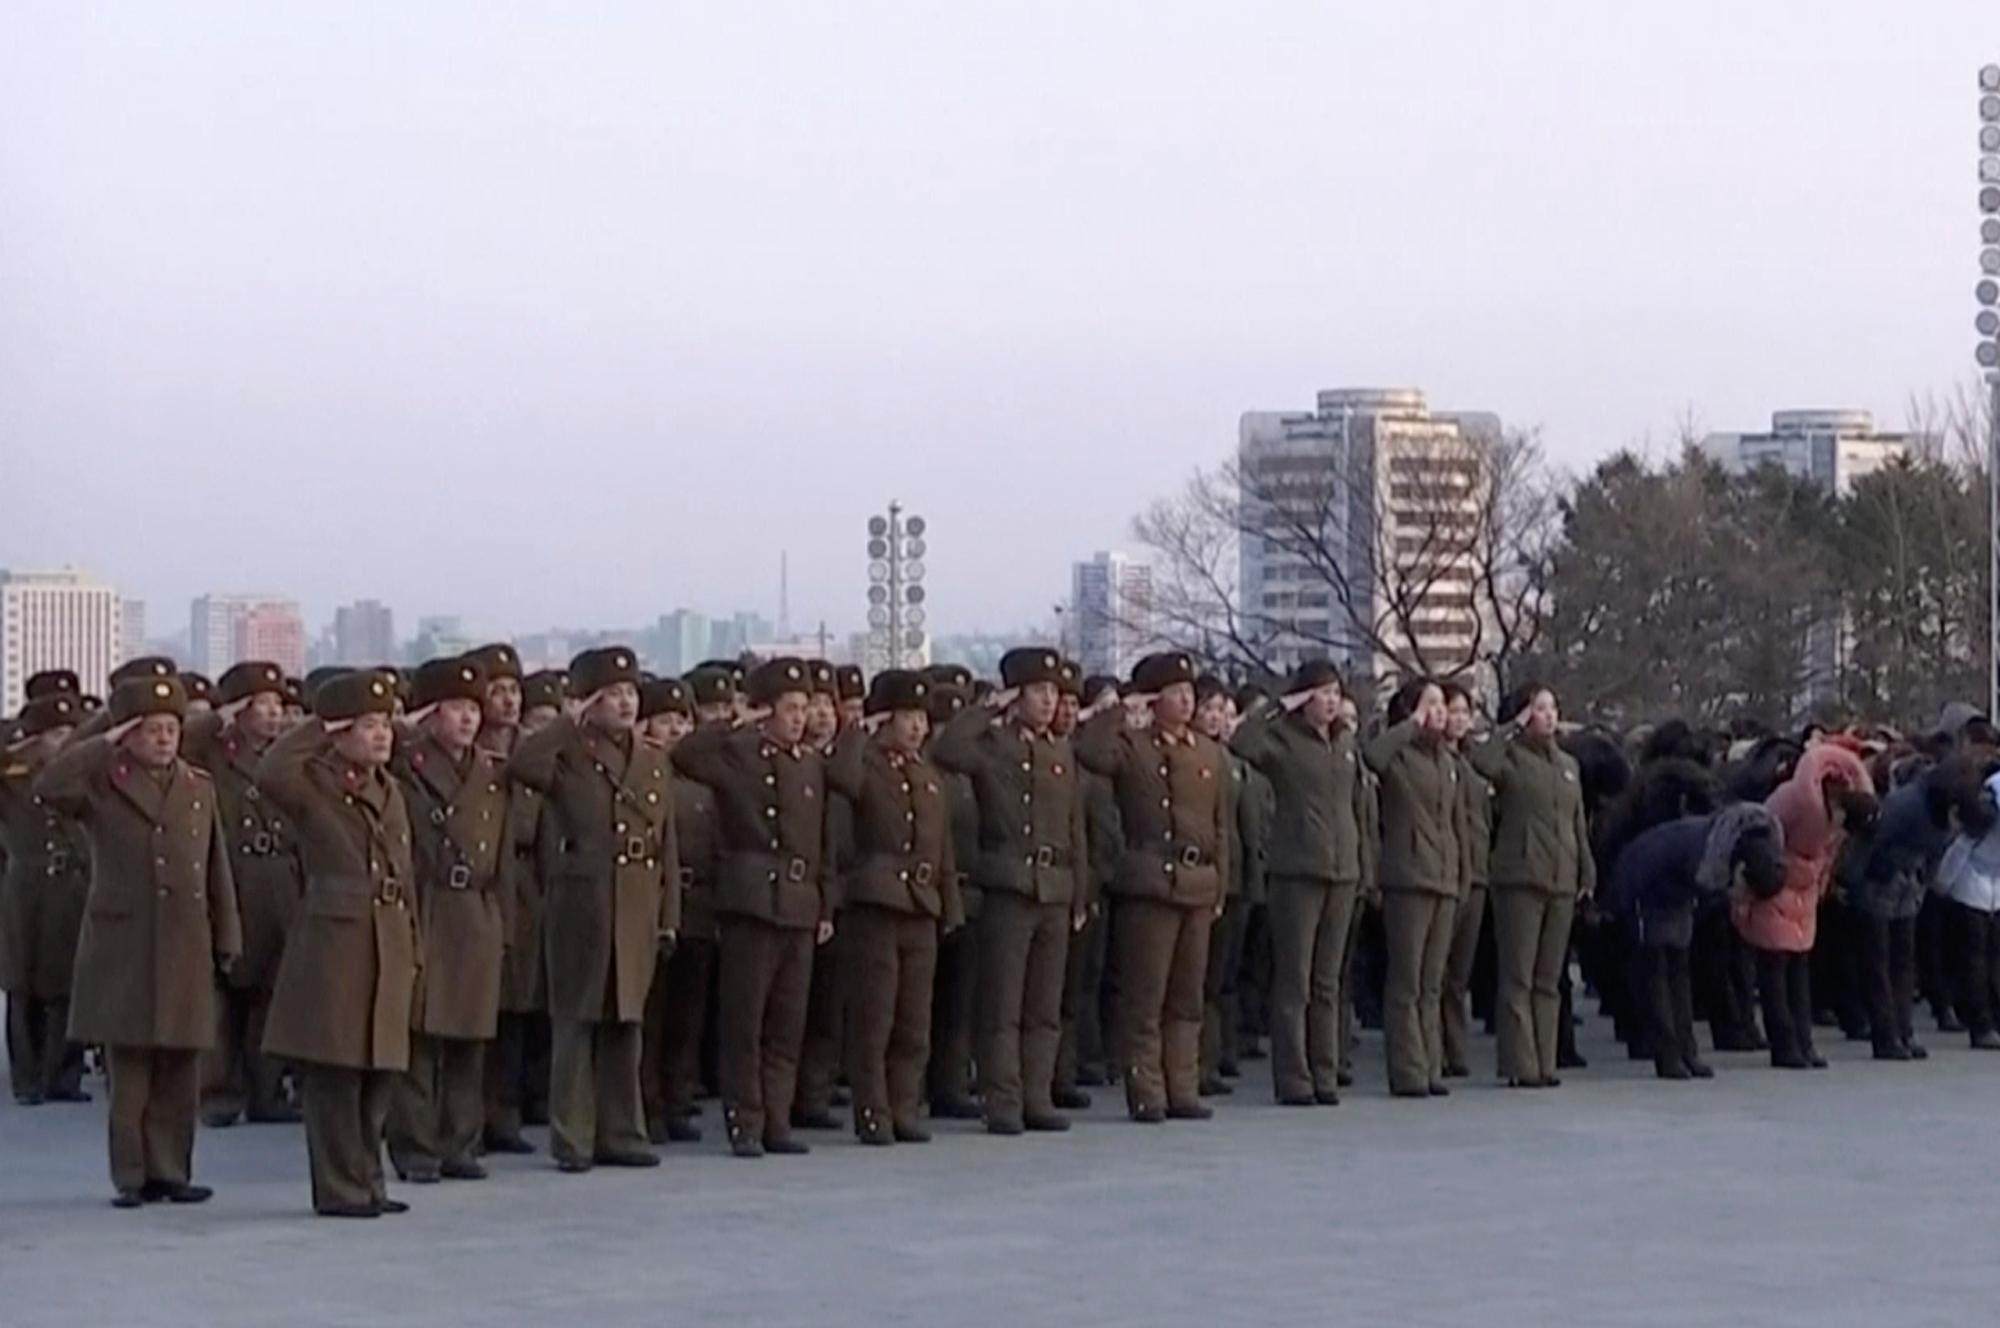 In this image taken from video footage, North Korean military personnel salute as they lay flowers in front of giant statues of Kim Il Sung and Kim Jong Il on Mansu Hill in central Pyongyang, Thursday, Feb. 8, 2018.  North Korea held a military parade and rally on Kim Il Sung Square on Thursday, just one day before South Korea holds the opening ceremony for the Pyeongchang Winter Olympics. (AP Photo)